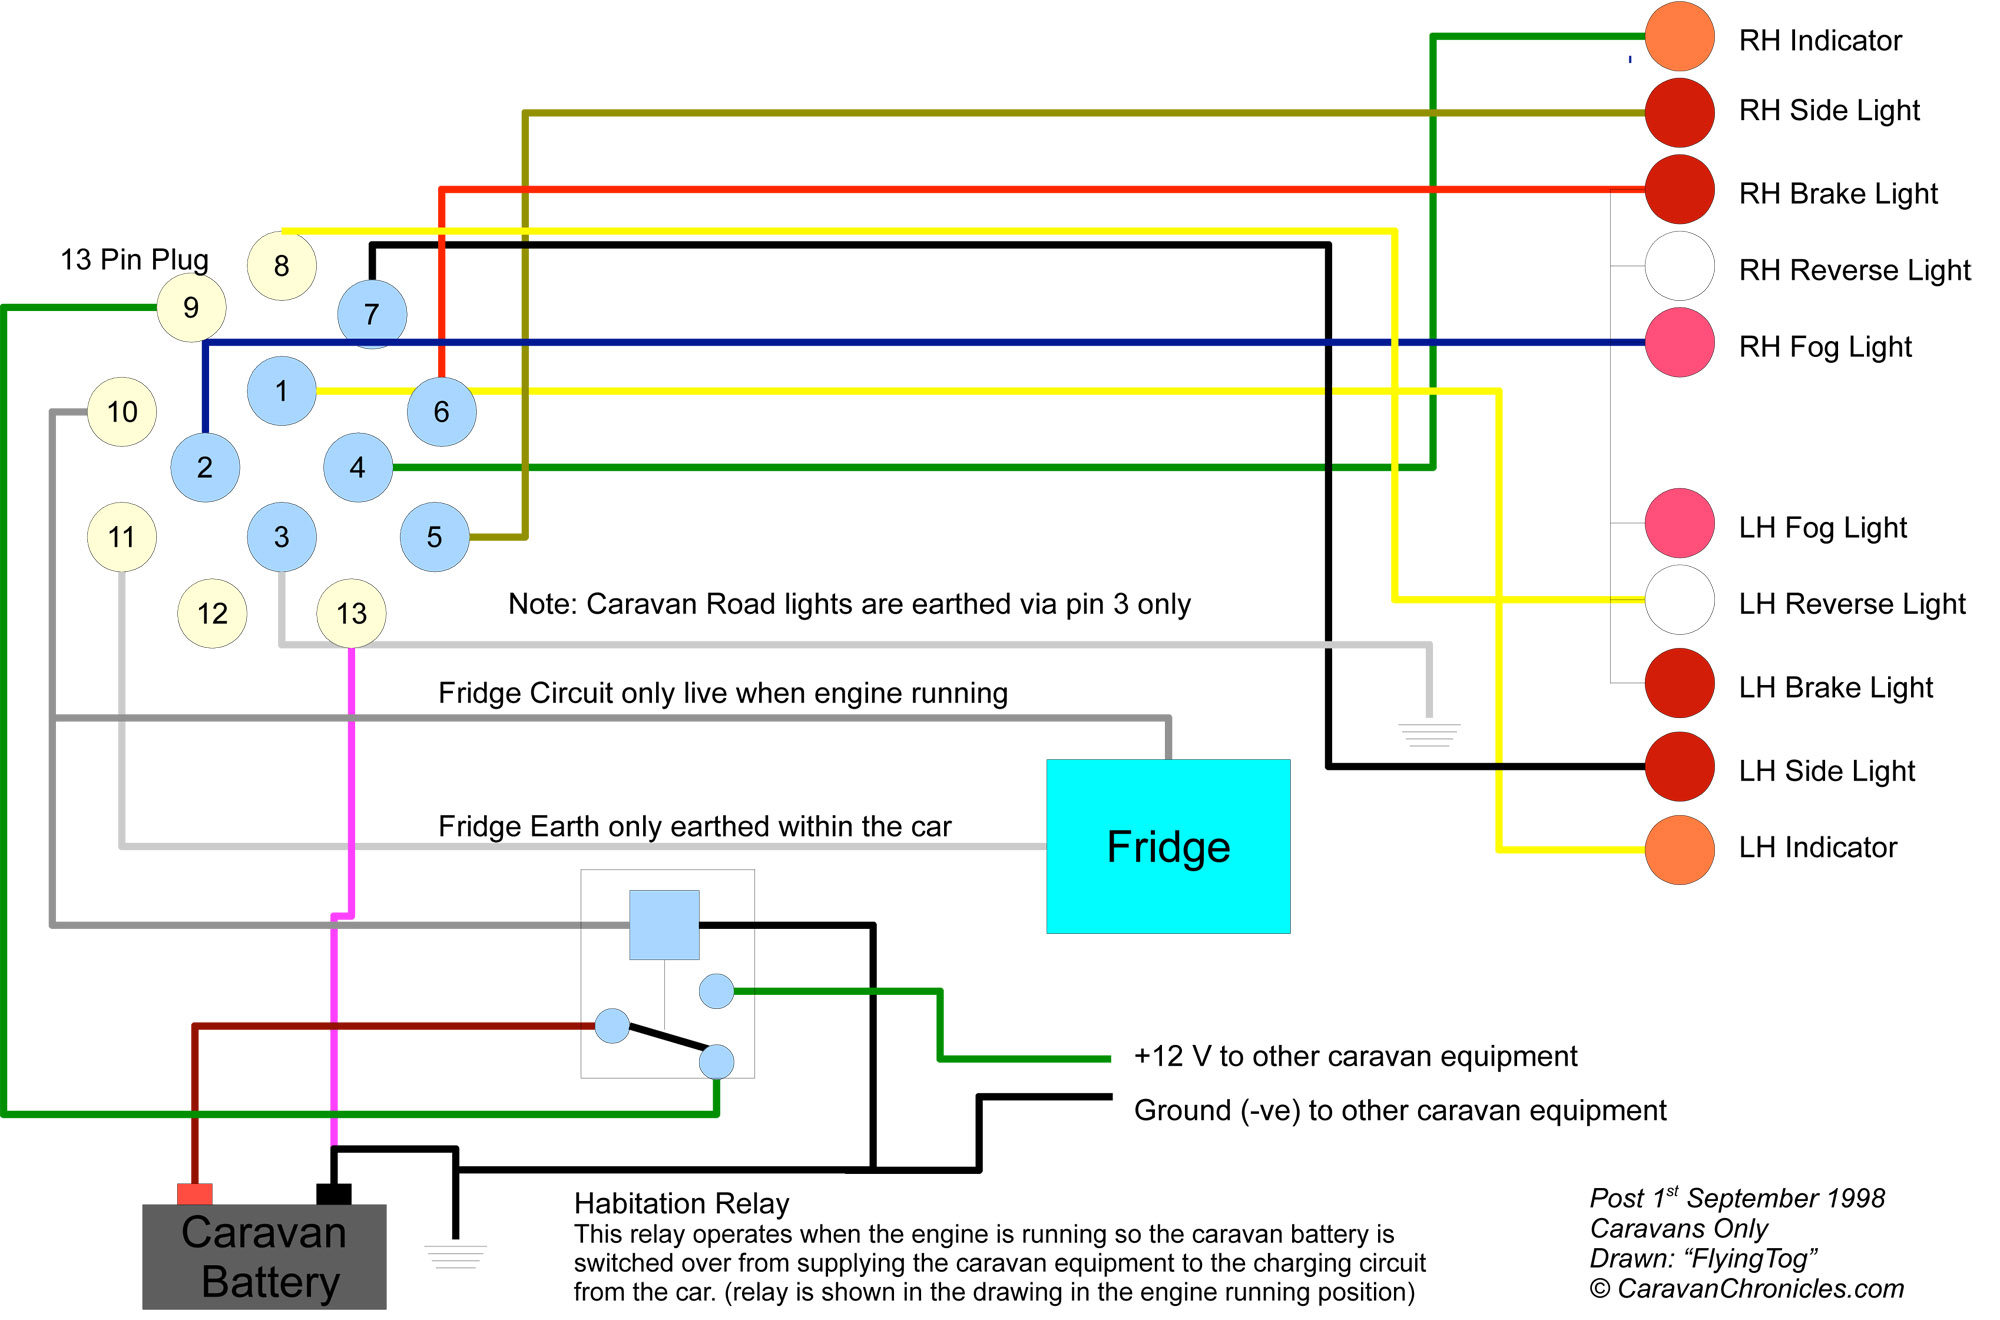 wiring diagram for caravan battery charging wiring diagram progresifunderstanding the leisure battery charging circuit caravan chronicles battery charging circuit diagram typical 13 pin connected